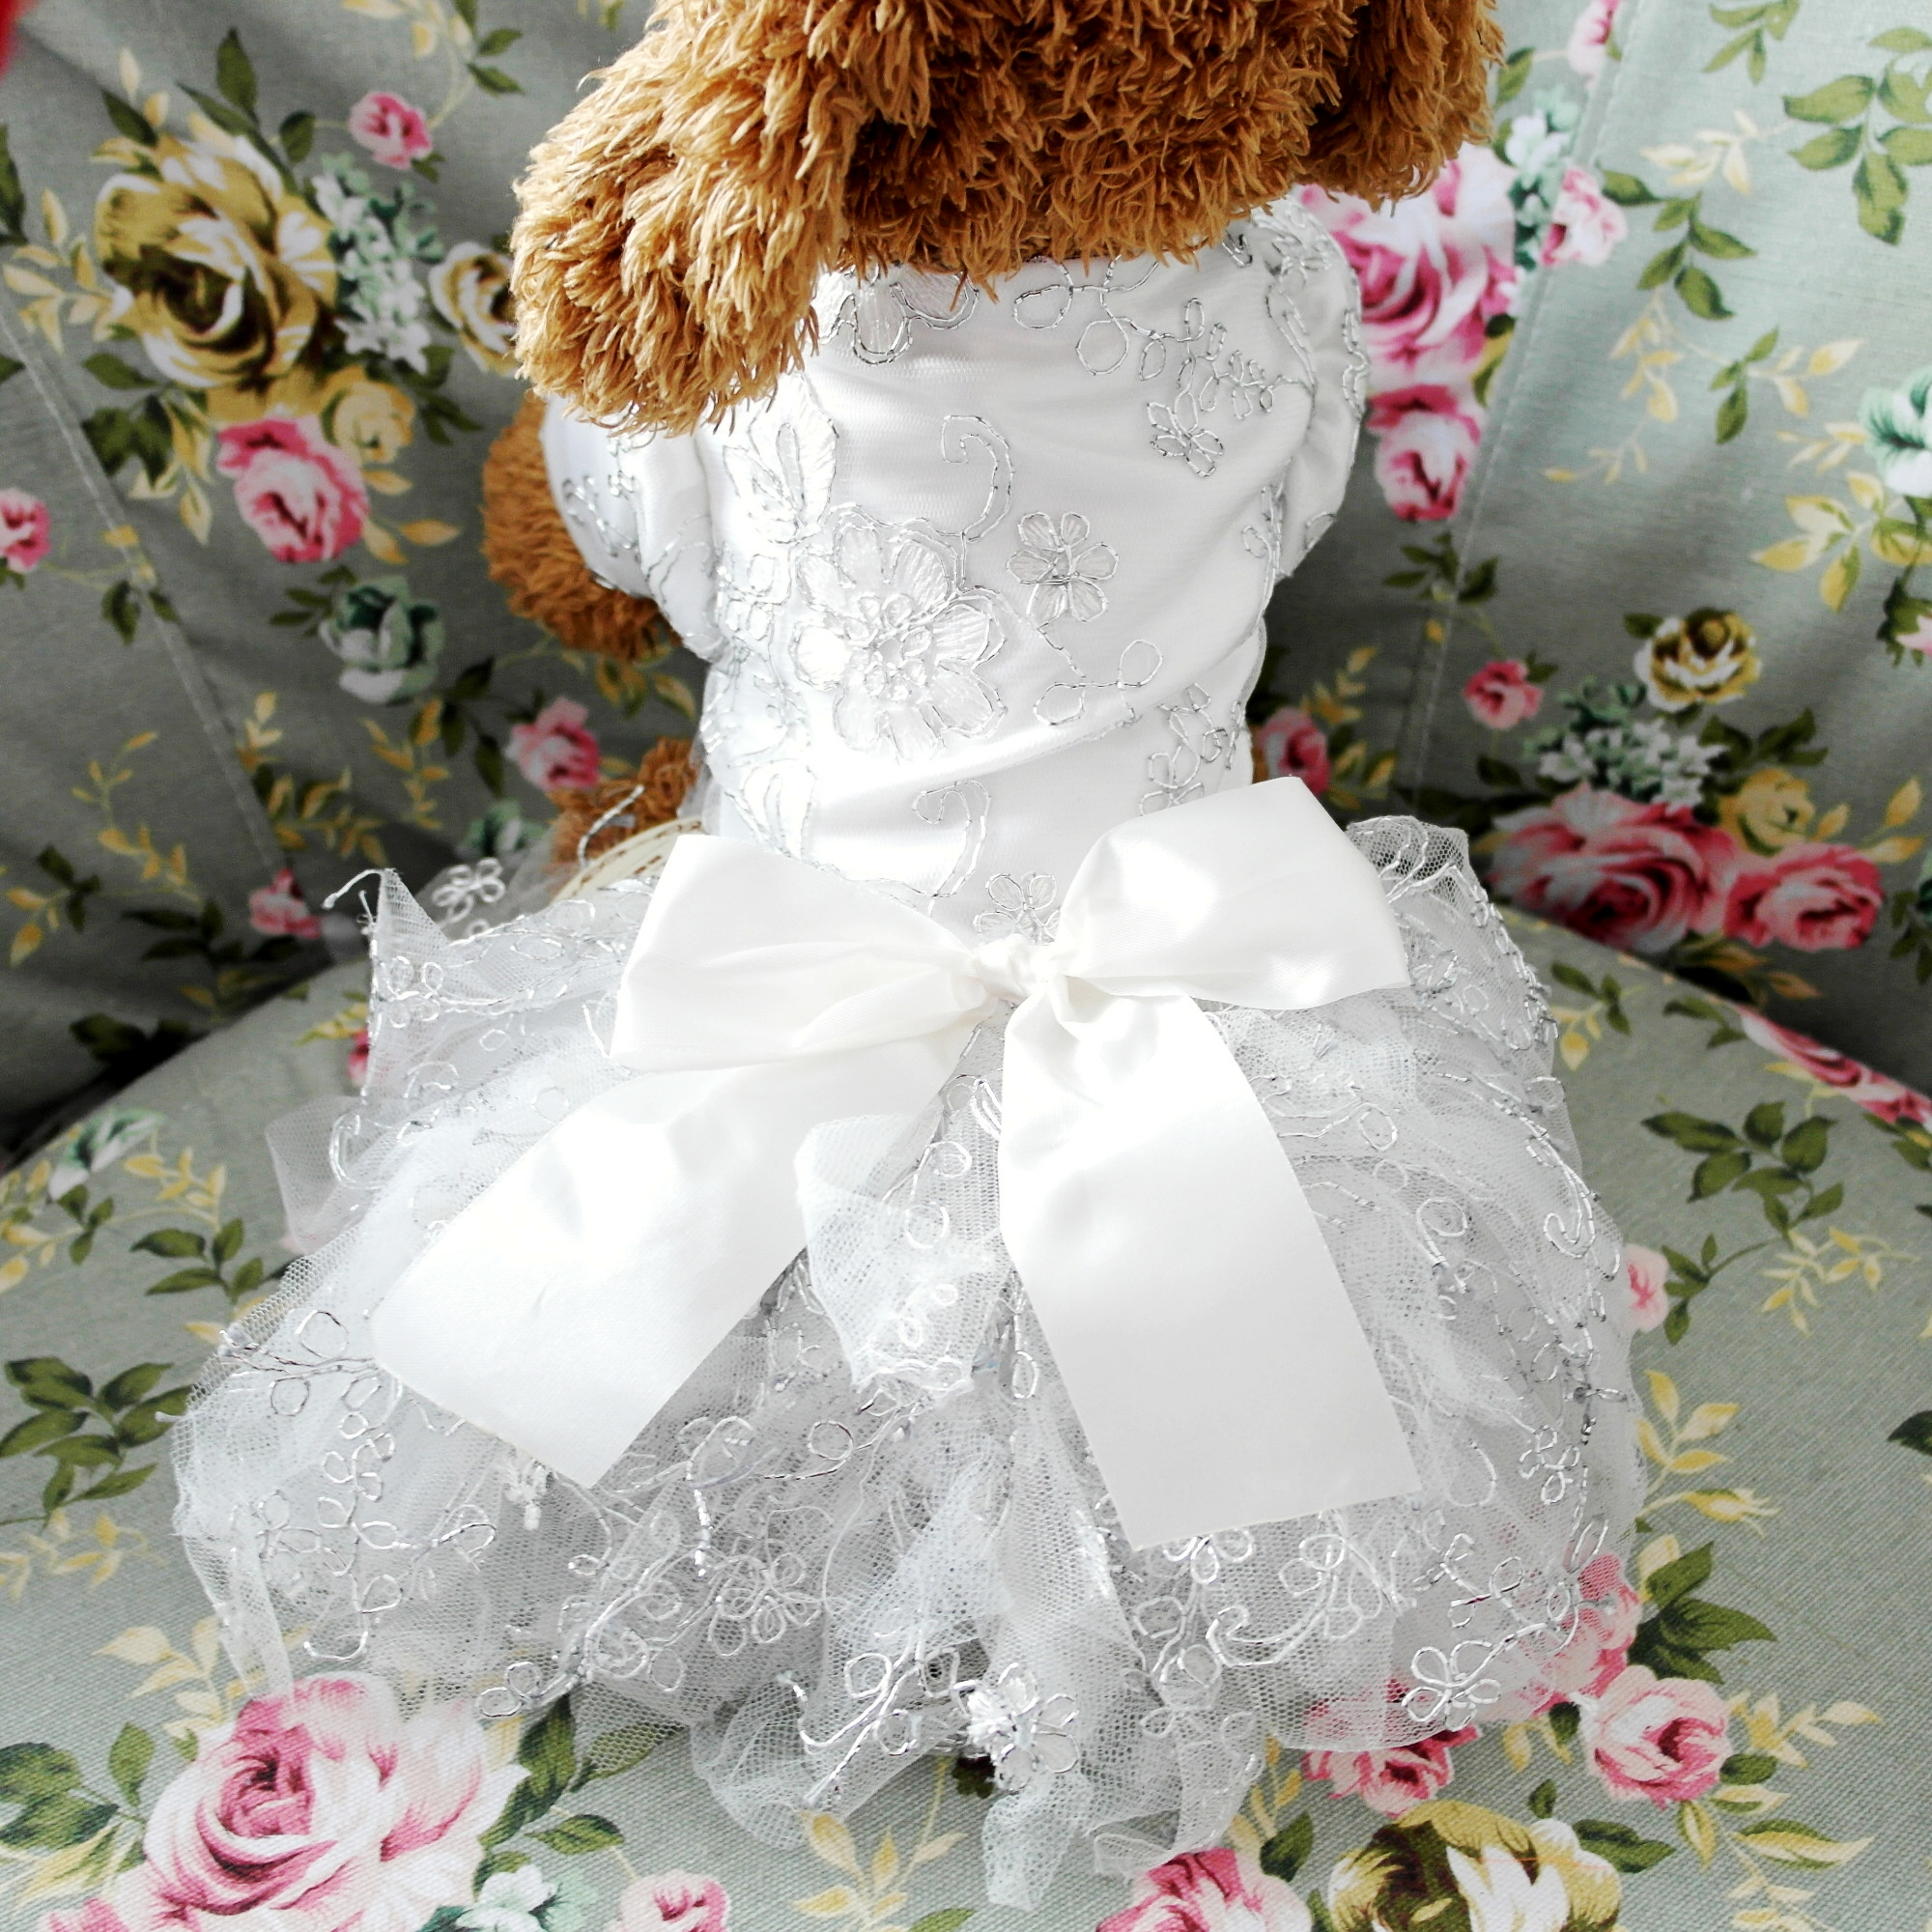 Petalk lace princess pet dog wedding dresses pet tutu skirt puppy petalk lace princess pet dog wedding dresses pet tutu skirt puppy cat dress pet apparel xs s m l xl in dog dresses from home garden on aliexpress ombrellifo Image collections